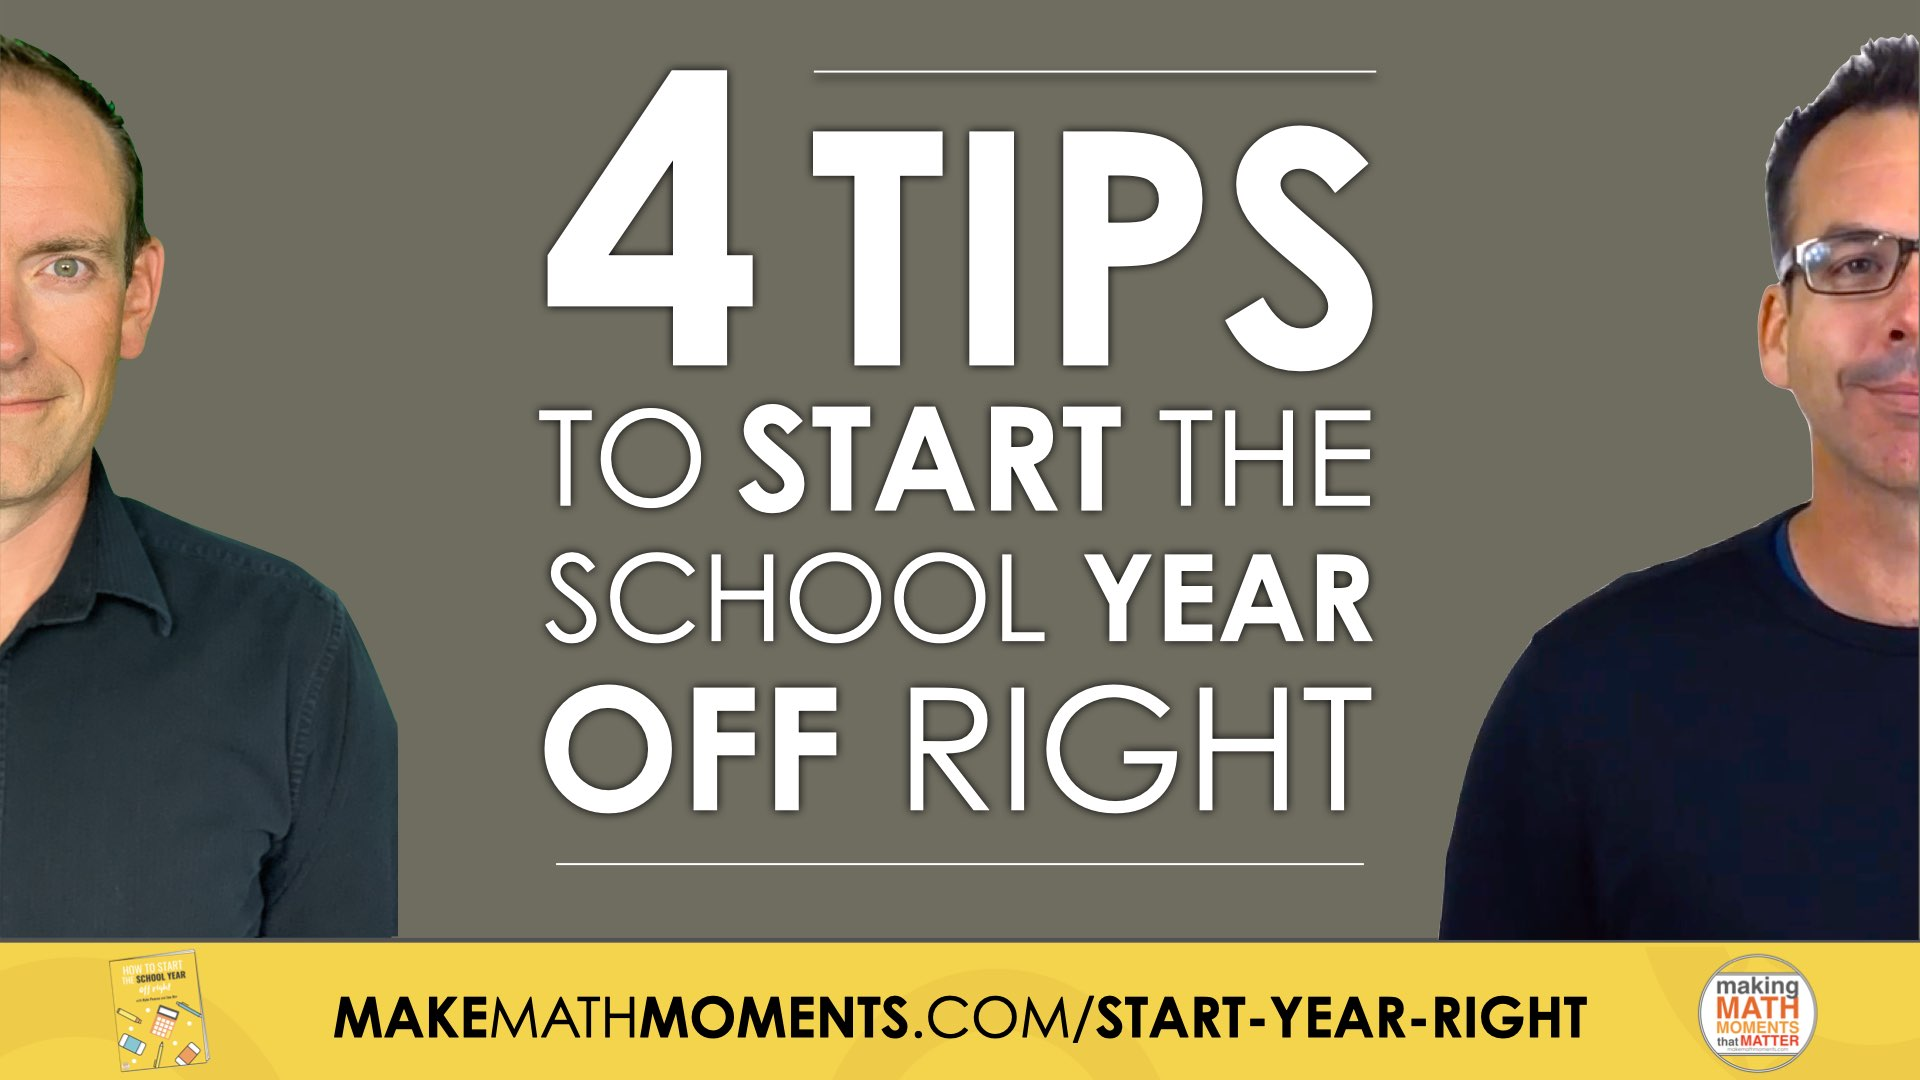 4 Tips To Start The School Year Off Right